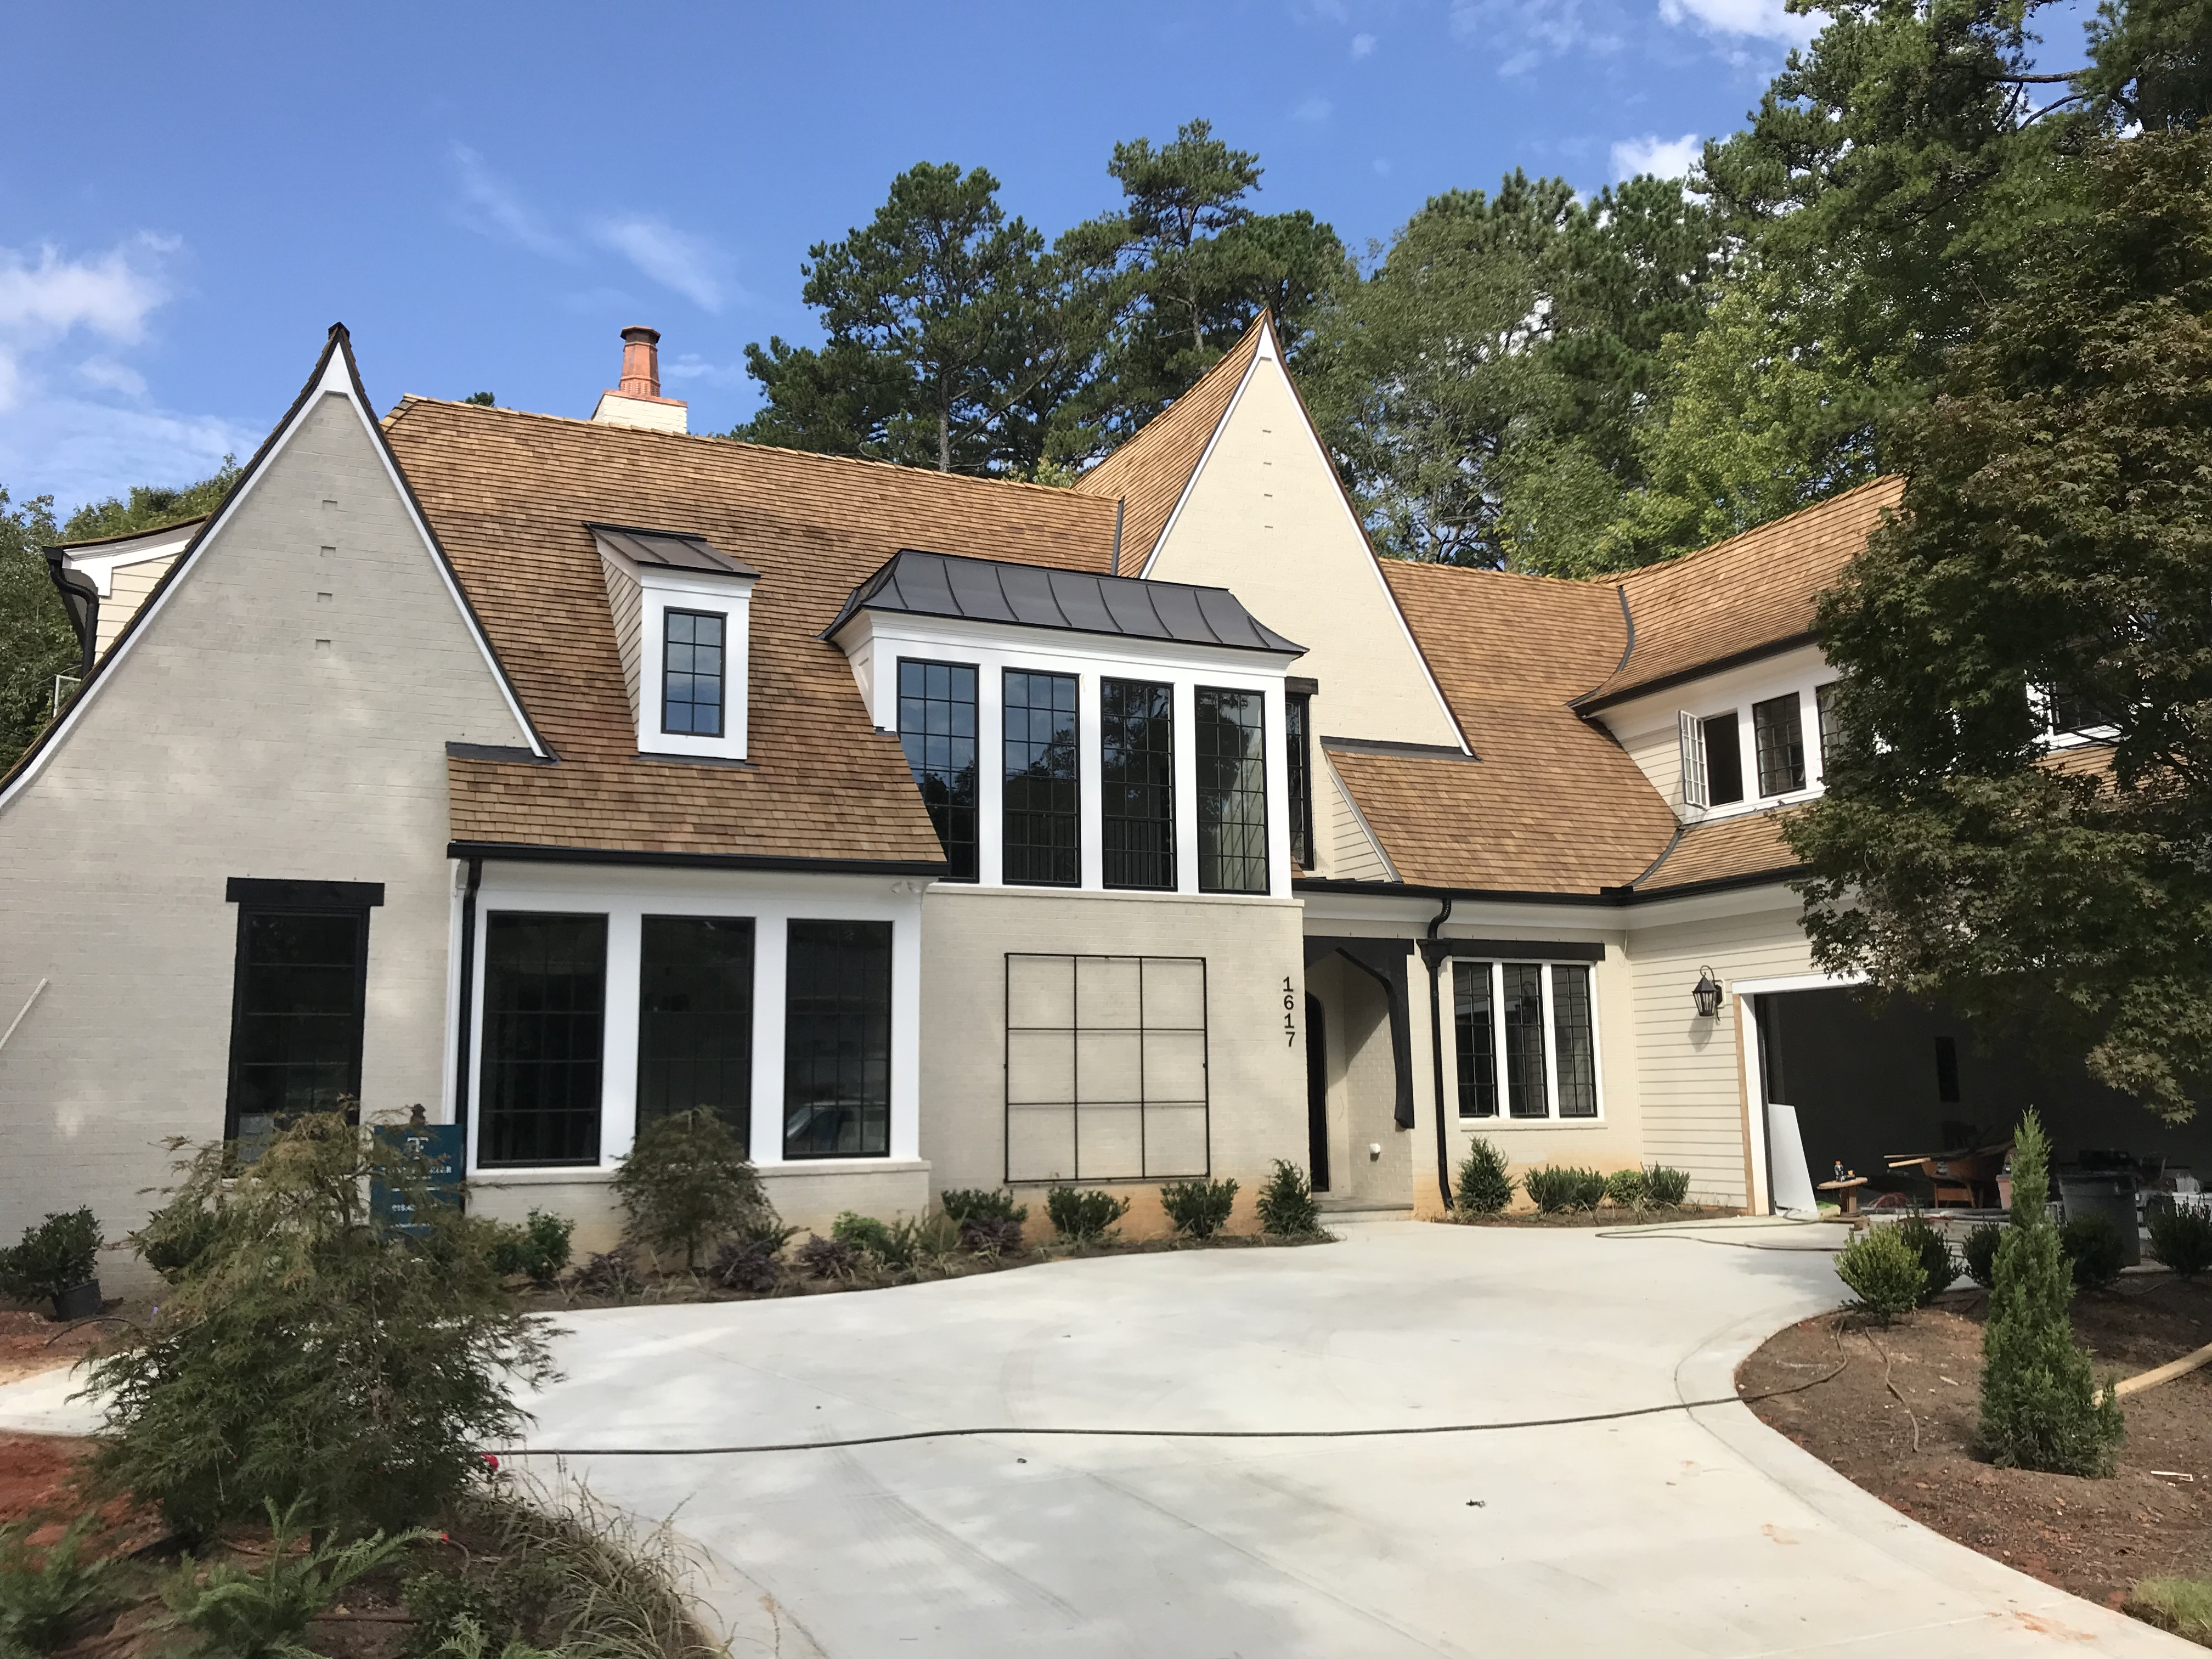 "<div class=""meta image-caption""><div class=""origin-logo origin-image wtvd""><span>WTVD</span></div><span class=""caption-text"">1617 Ridge Road in Raleigh</span></div>"